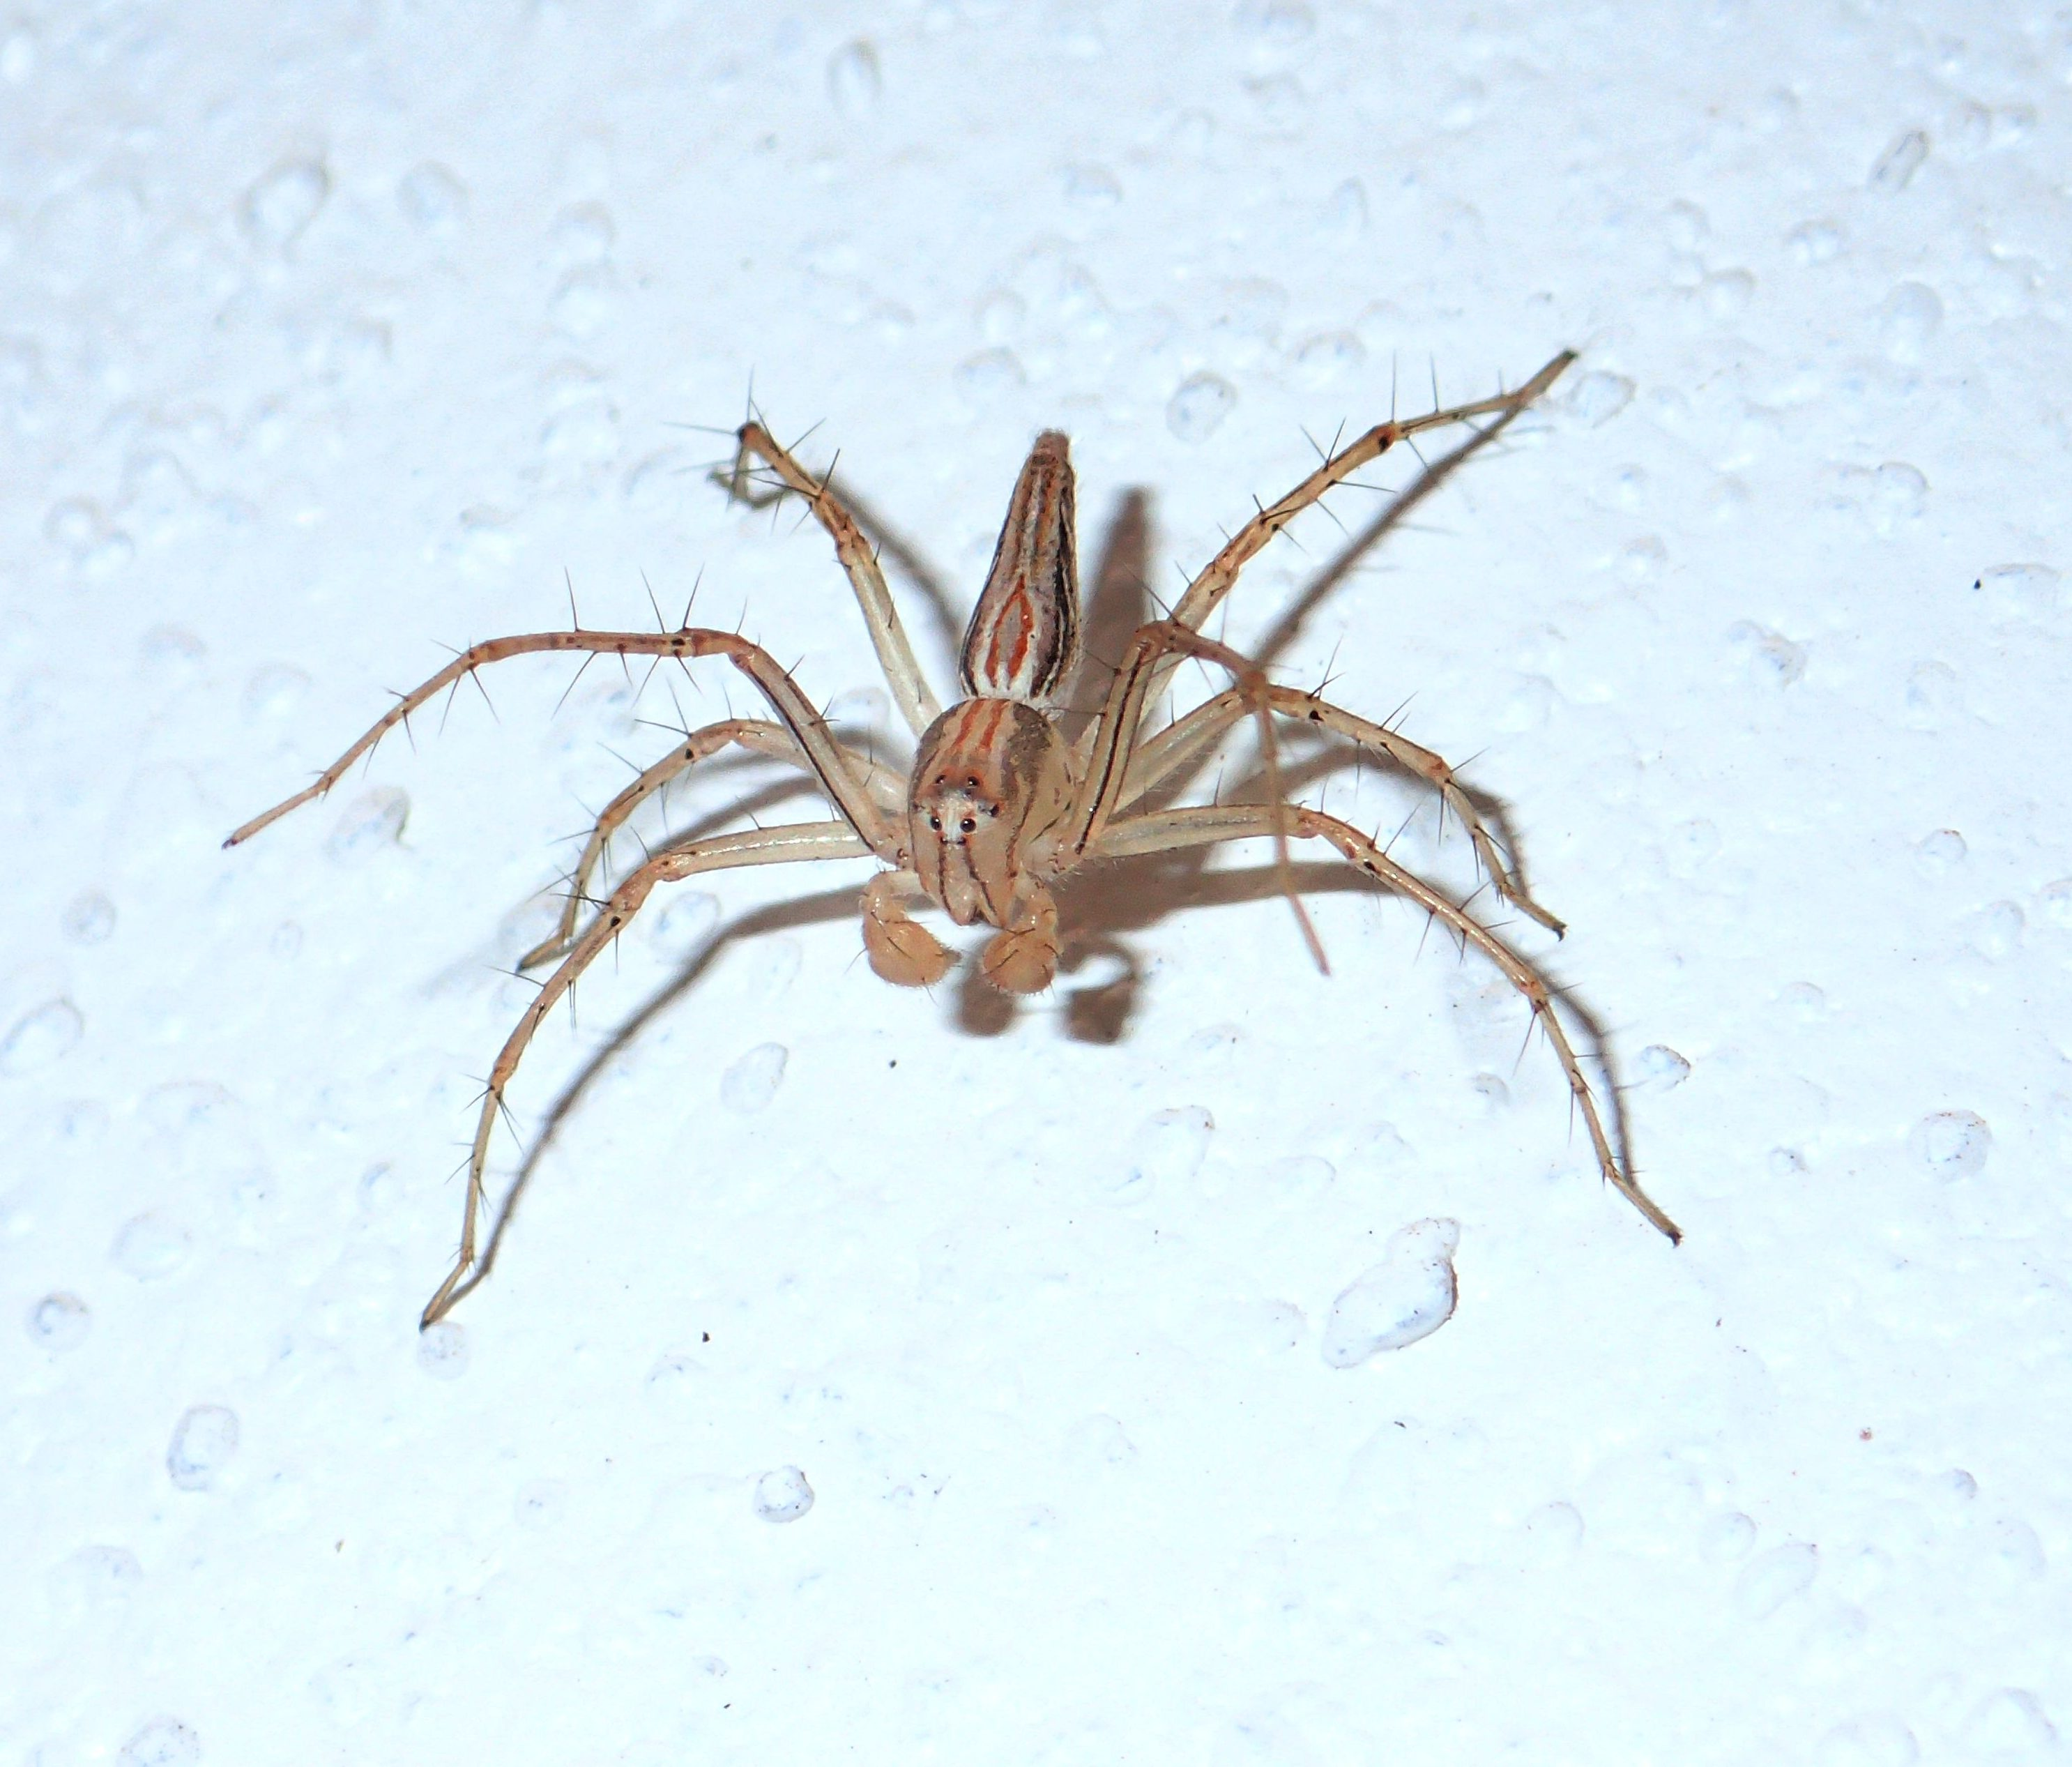 Picture of Oxyopes birmanicus (Burmese Lynx Spider) - Male - Dorsal